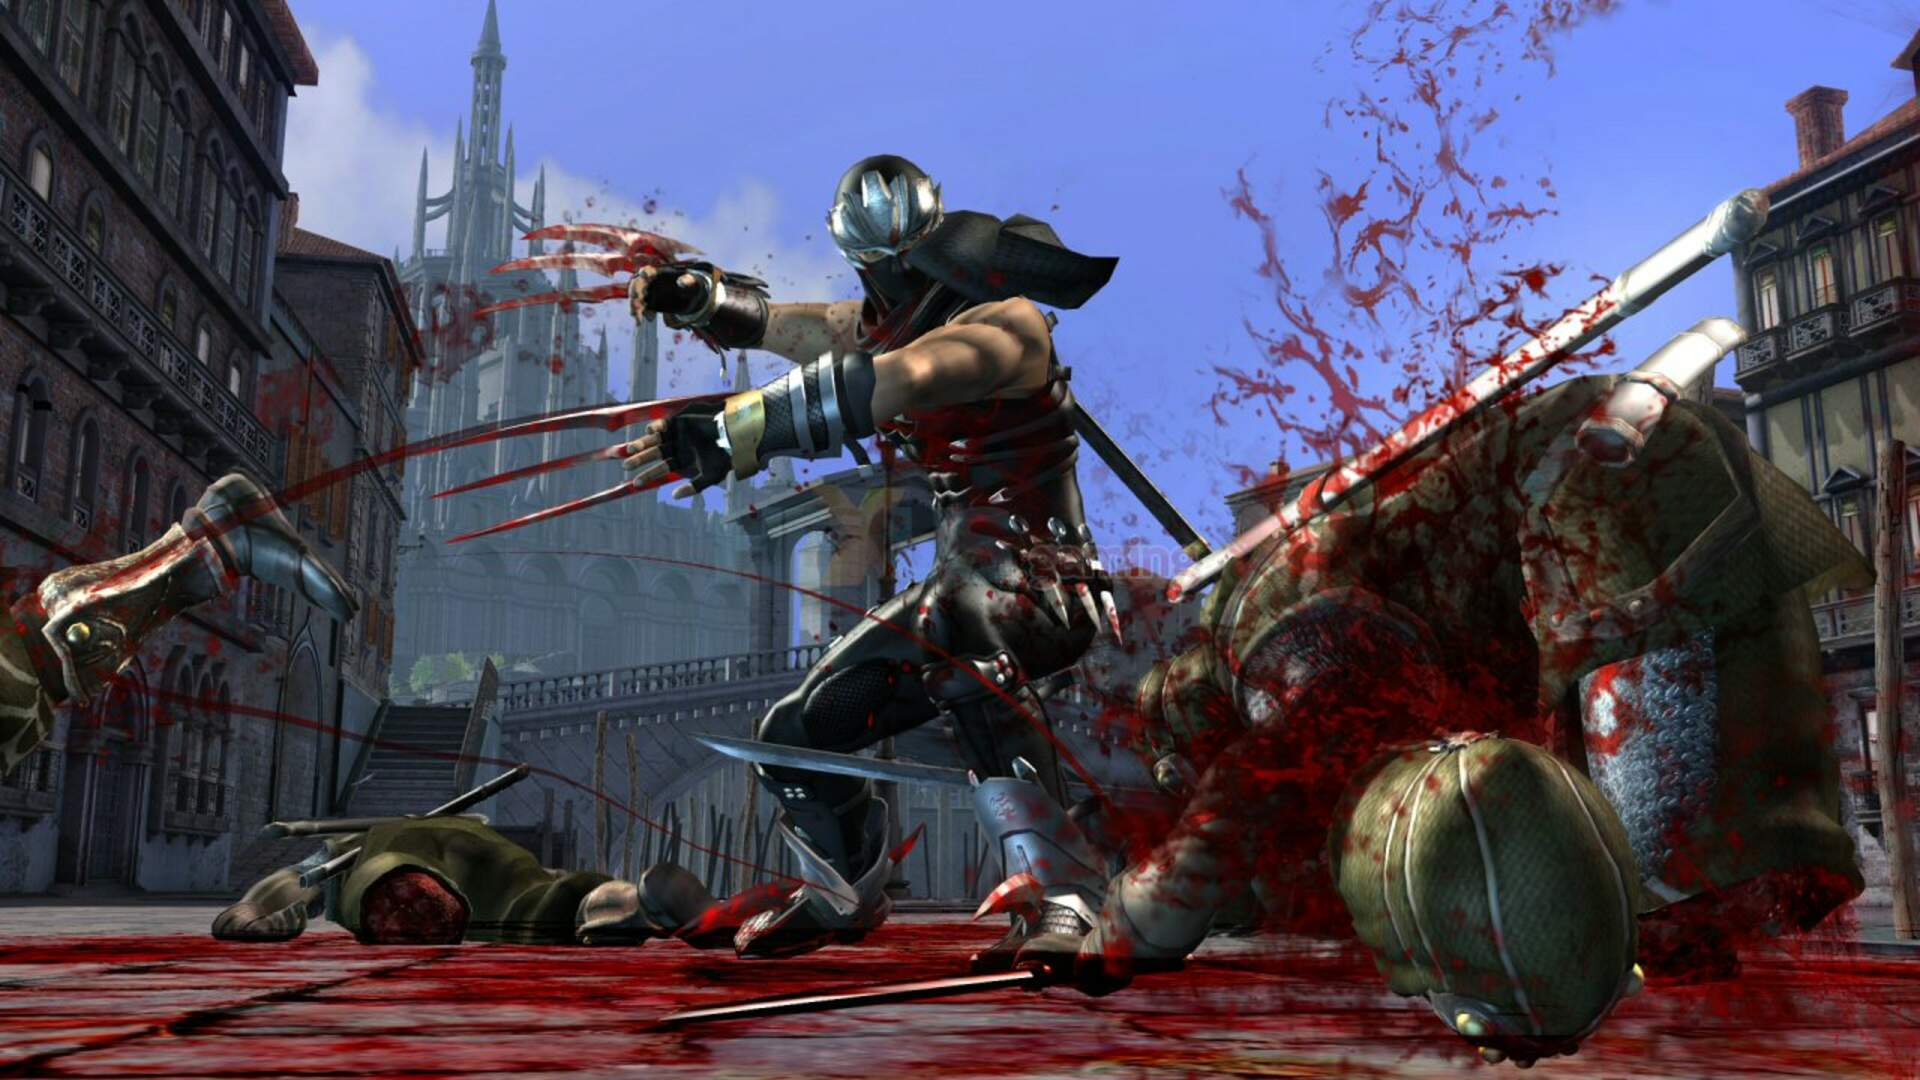 Ninja Gaiden 2 Leads The Latest Wave Of Xbox One X Enhanced Backward Compatible Games Usgamer